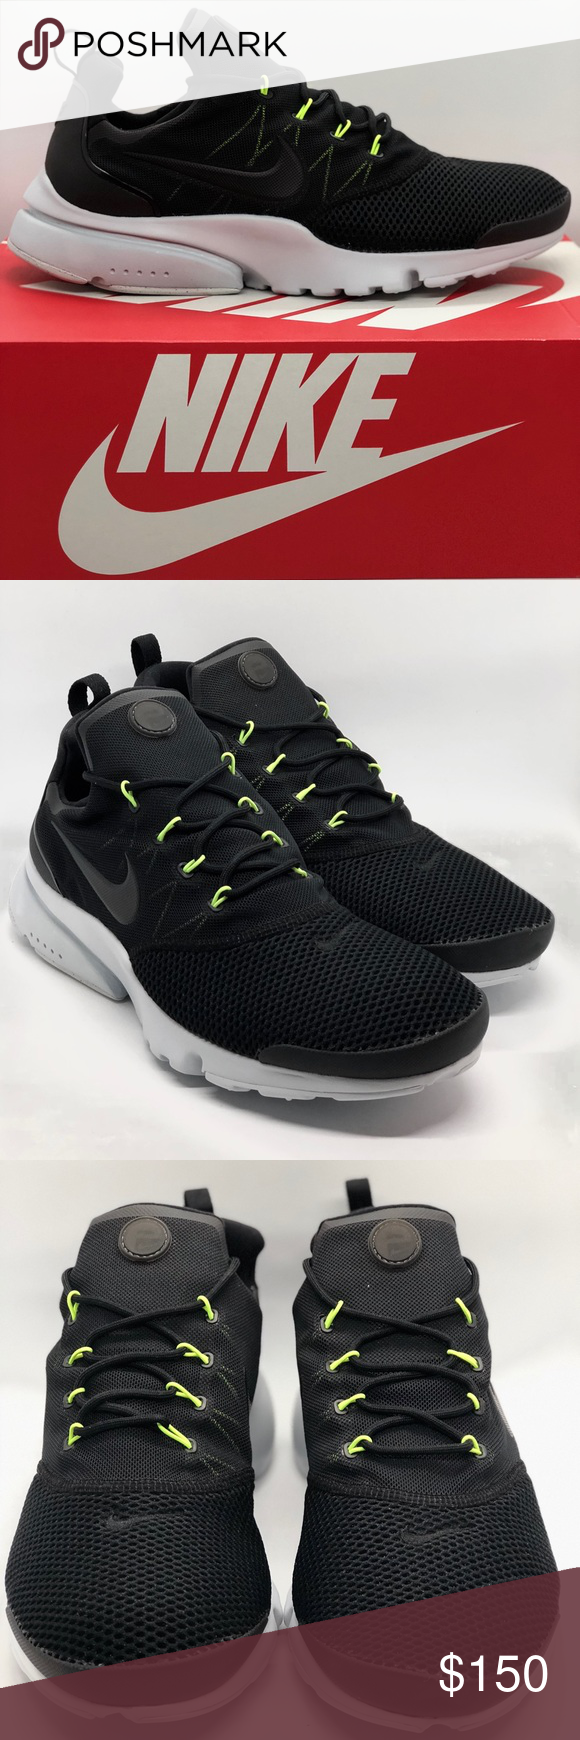 promo code 41c4c 2896b Nike PRESTO FLY (908019 004) Mens Sneakers Nike PRESTO FLY (908019 004)  Mens Sneakers Size 11 Black Volt Pure Platinum • Stretch mesh upper  provides ...